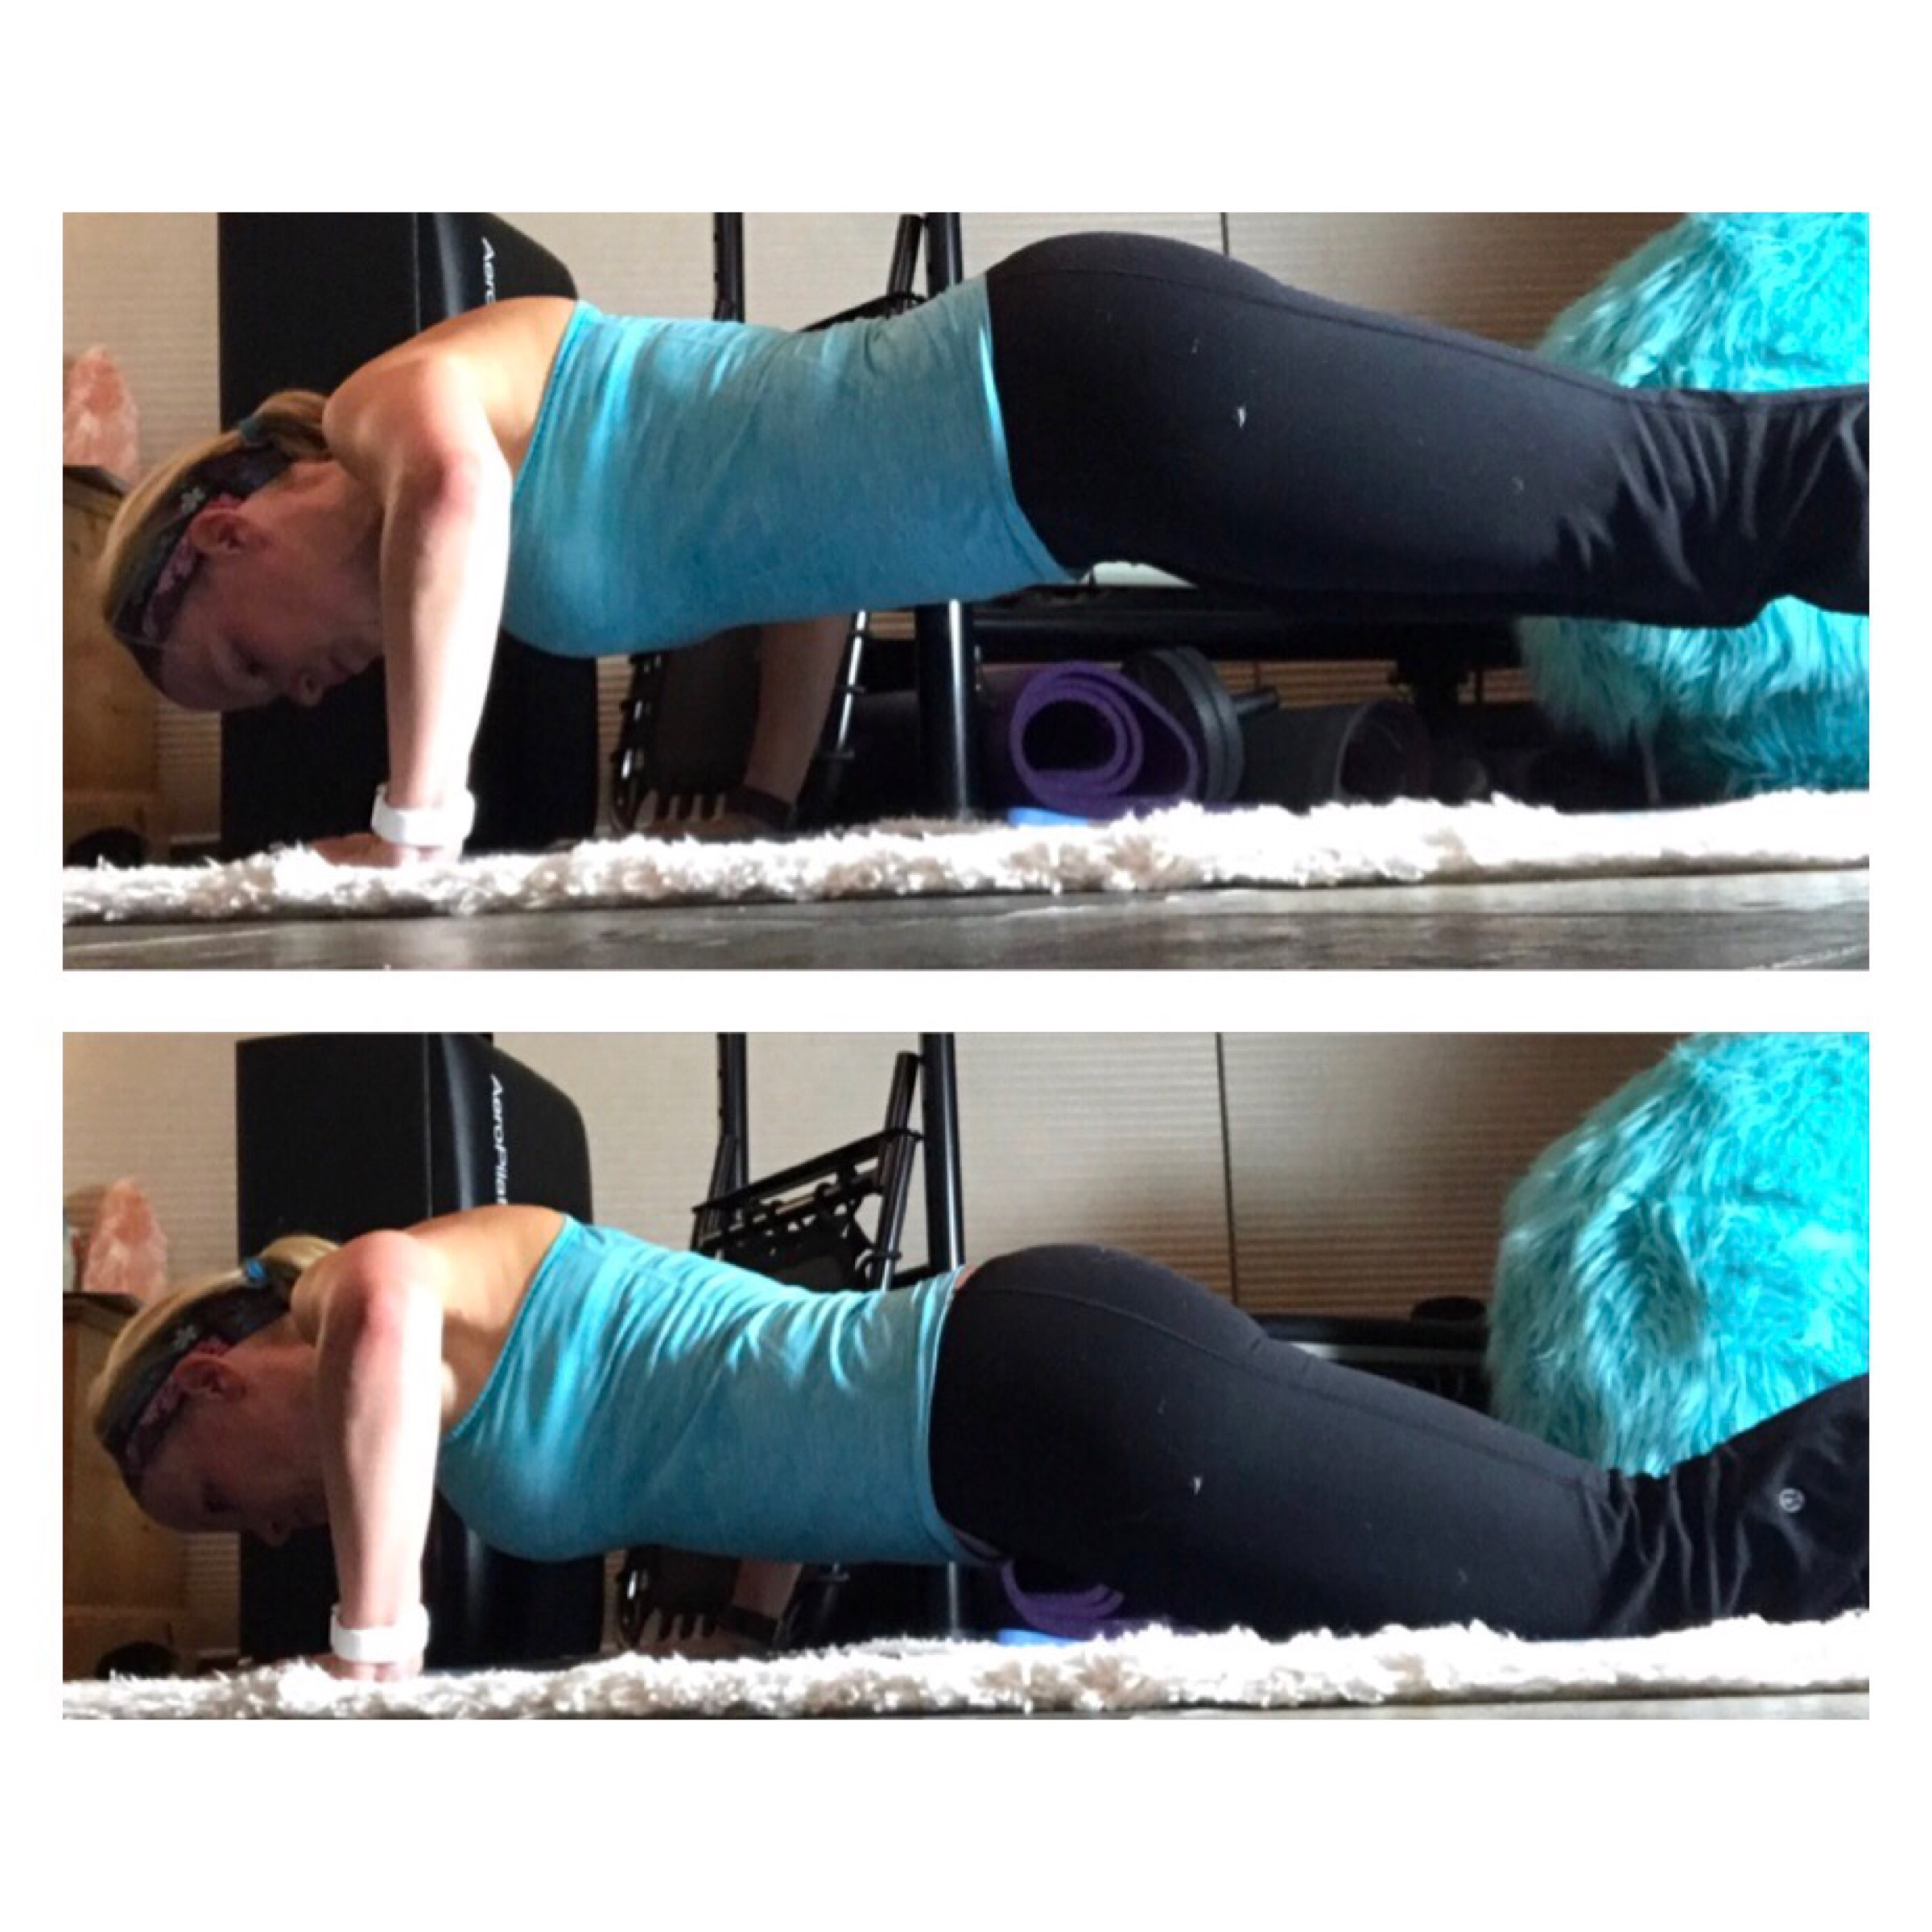 #Just5Minutes – 30mins cycling/spinning at home & 30 push-ups